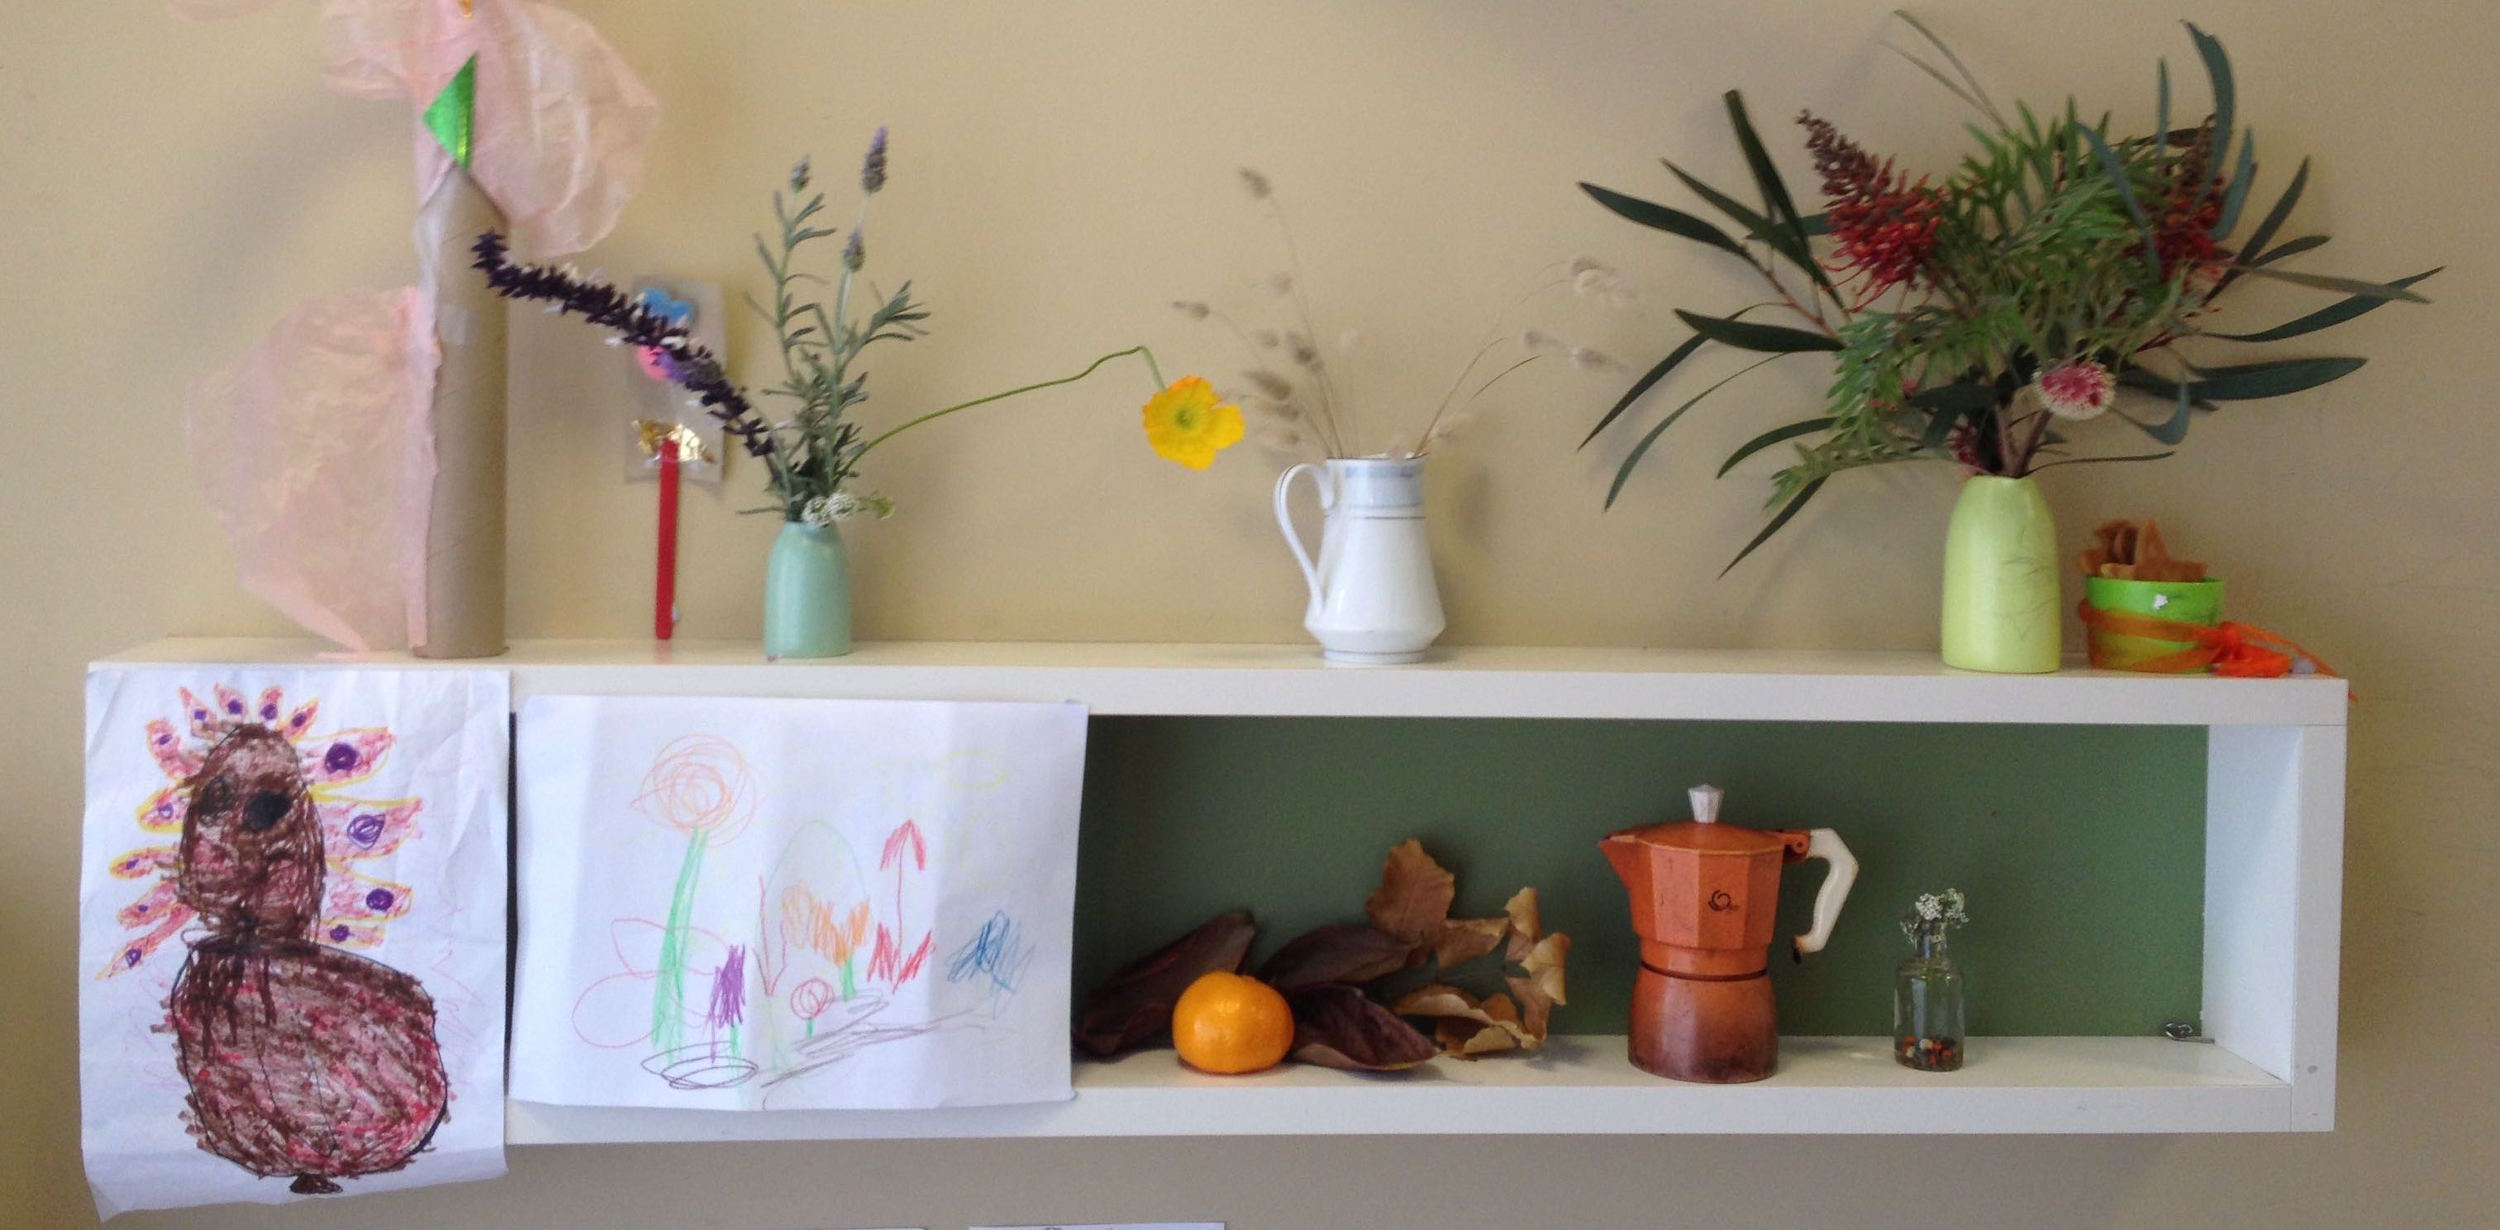 Shelf in Emmaline's room at Caritas Christi, 1 June 2015.